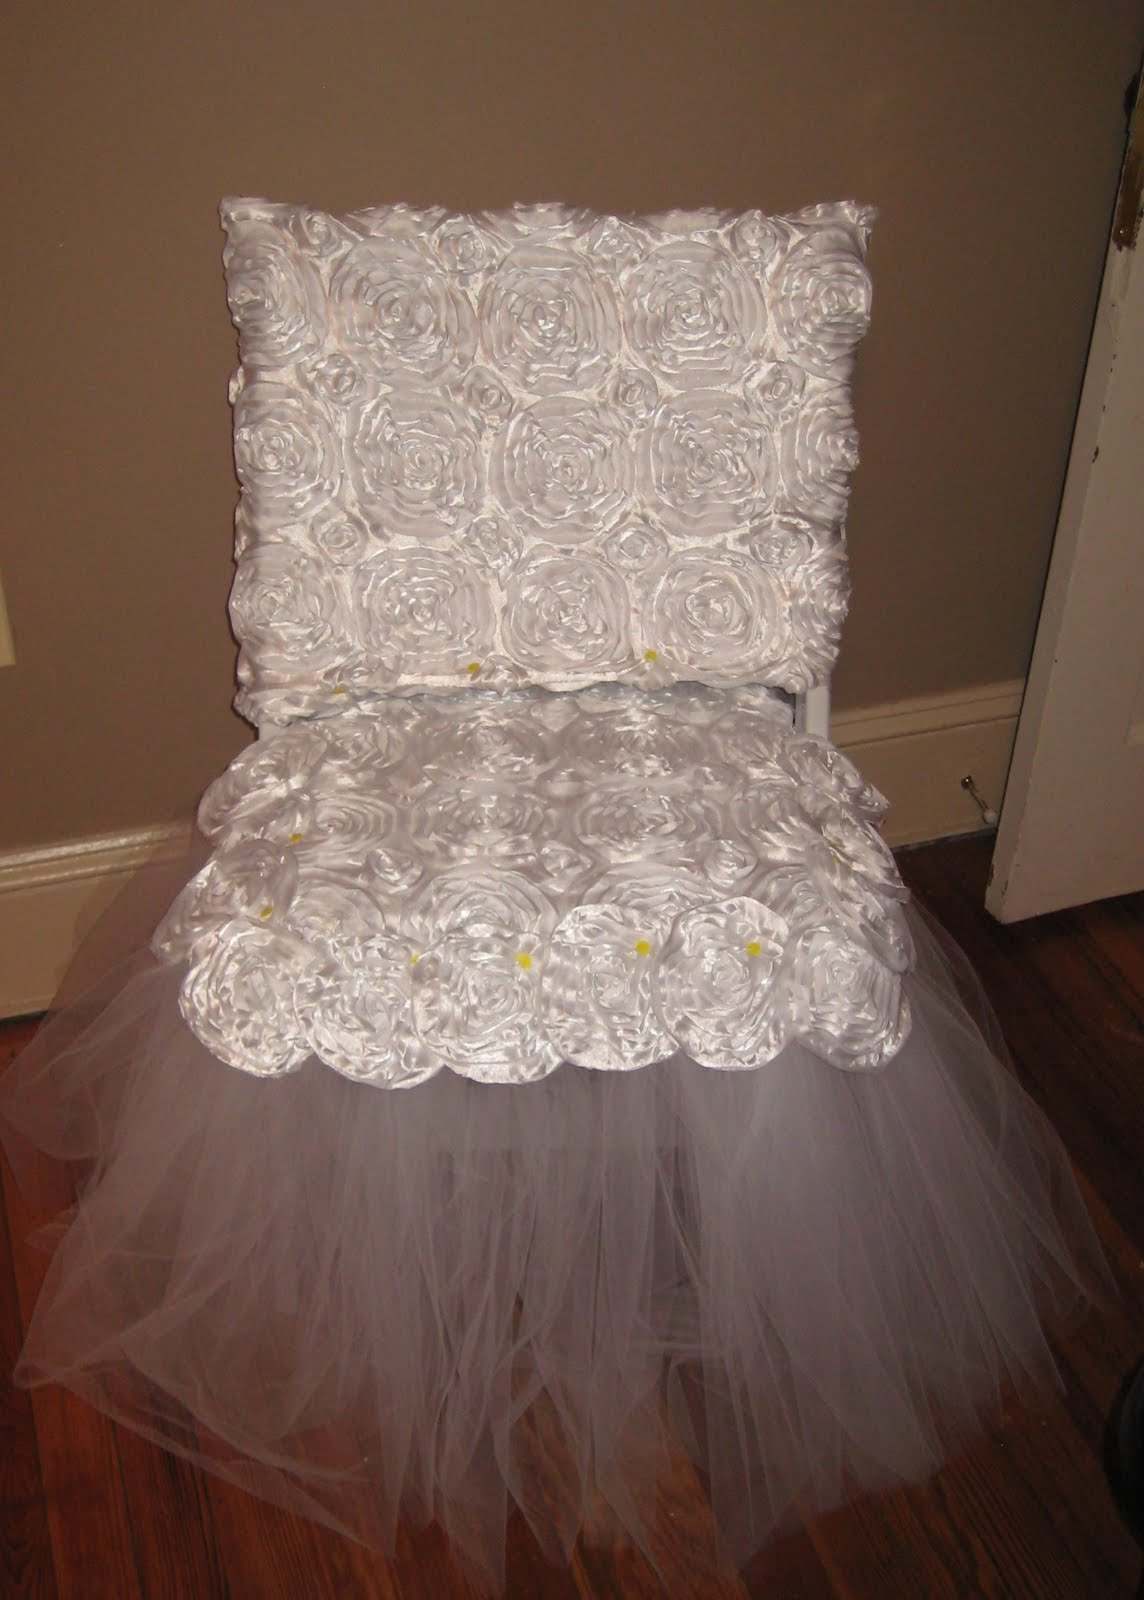 Chair Cover Rentals Jersey City Nj Beach Towel Clips For All Things Creative Bridal Shower Bride To Be